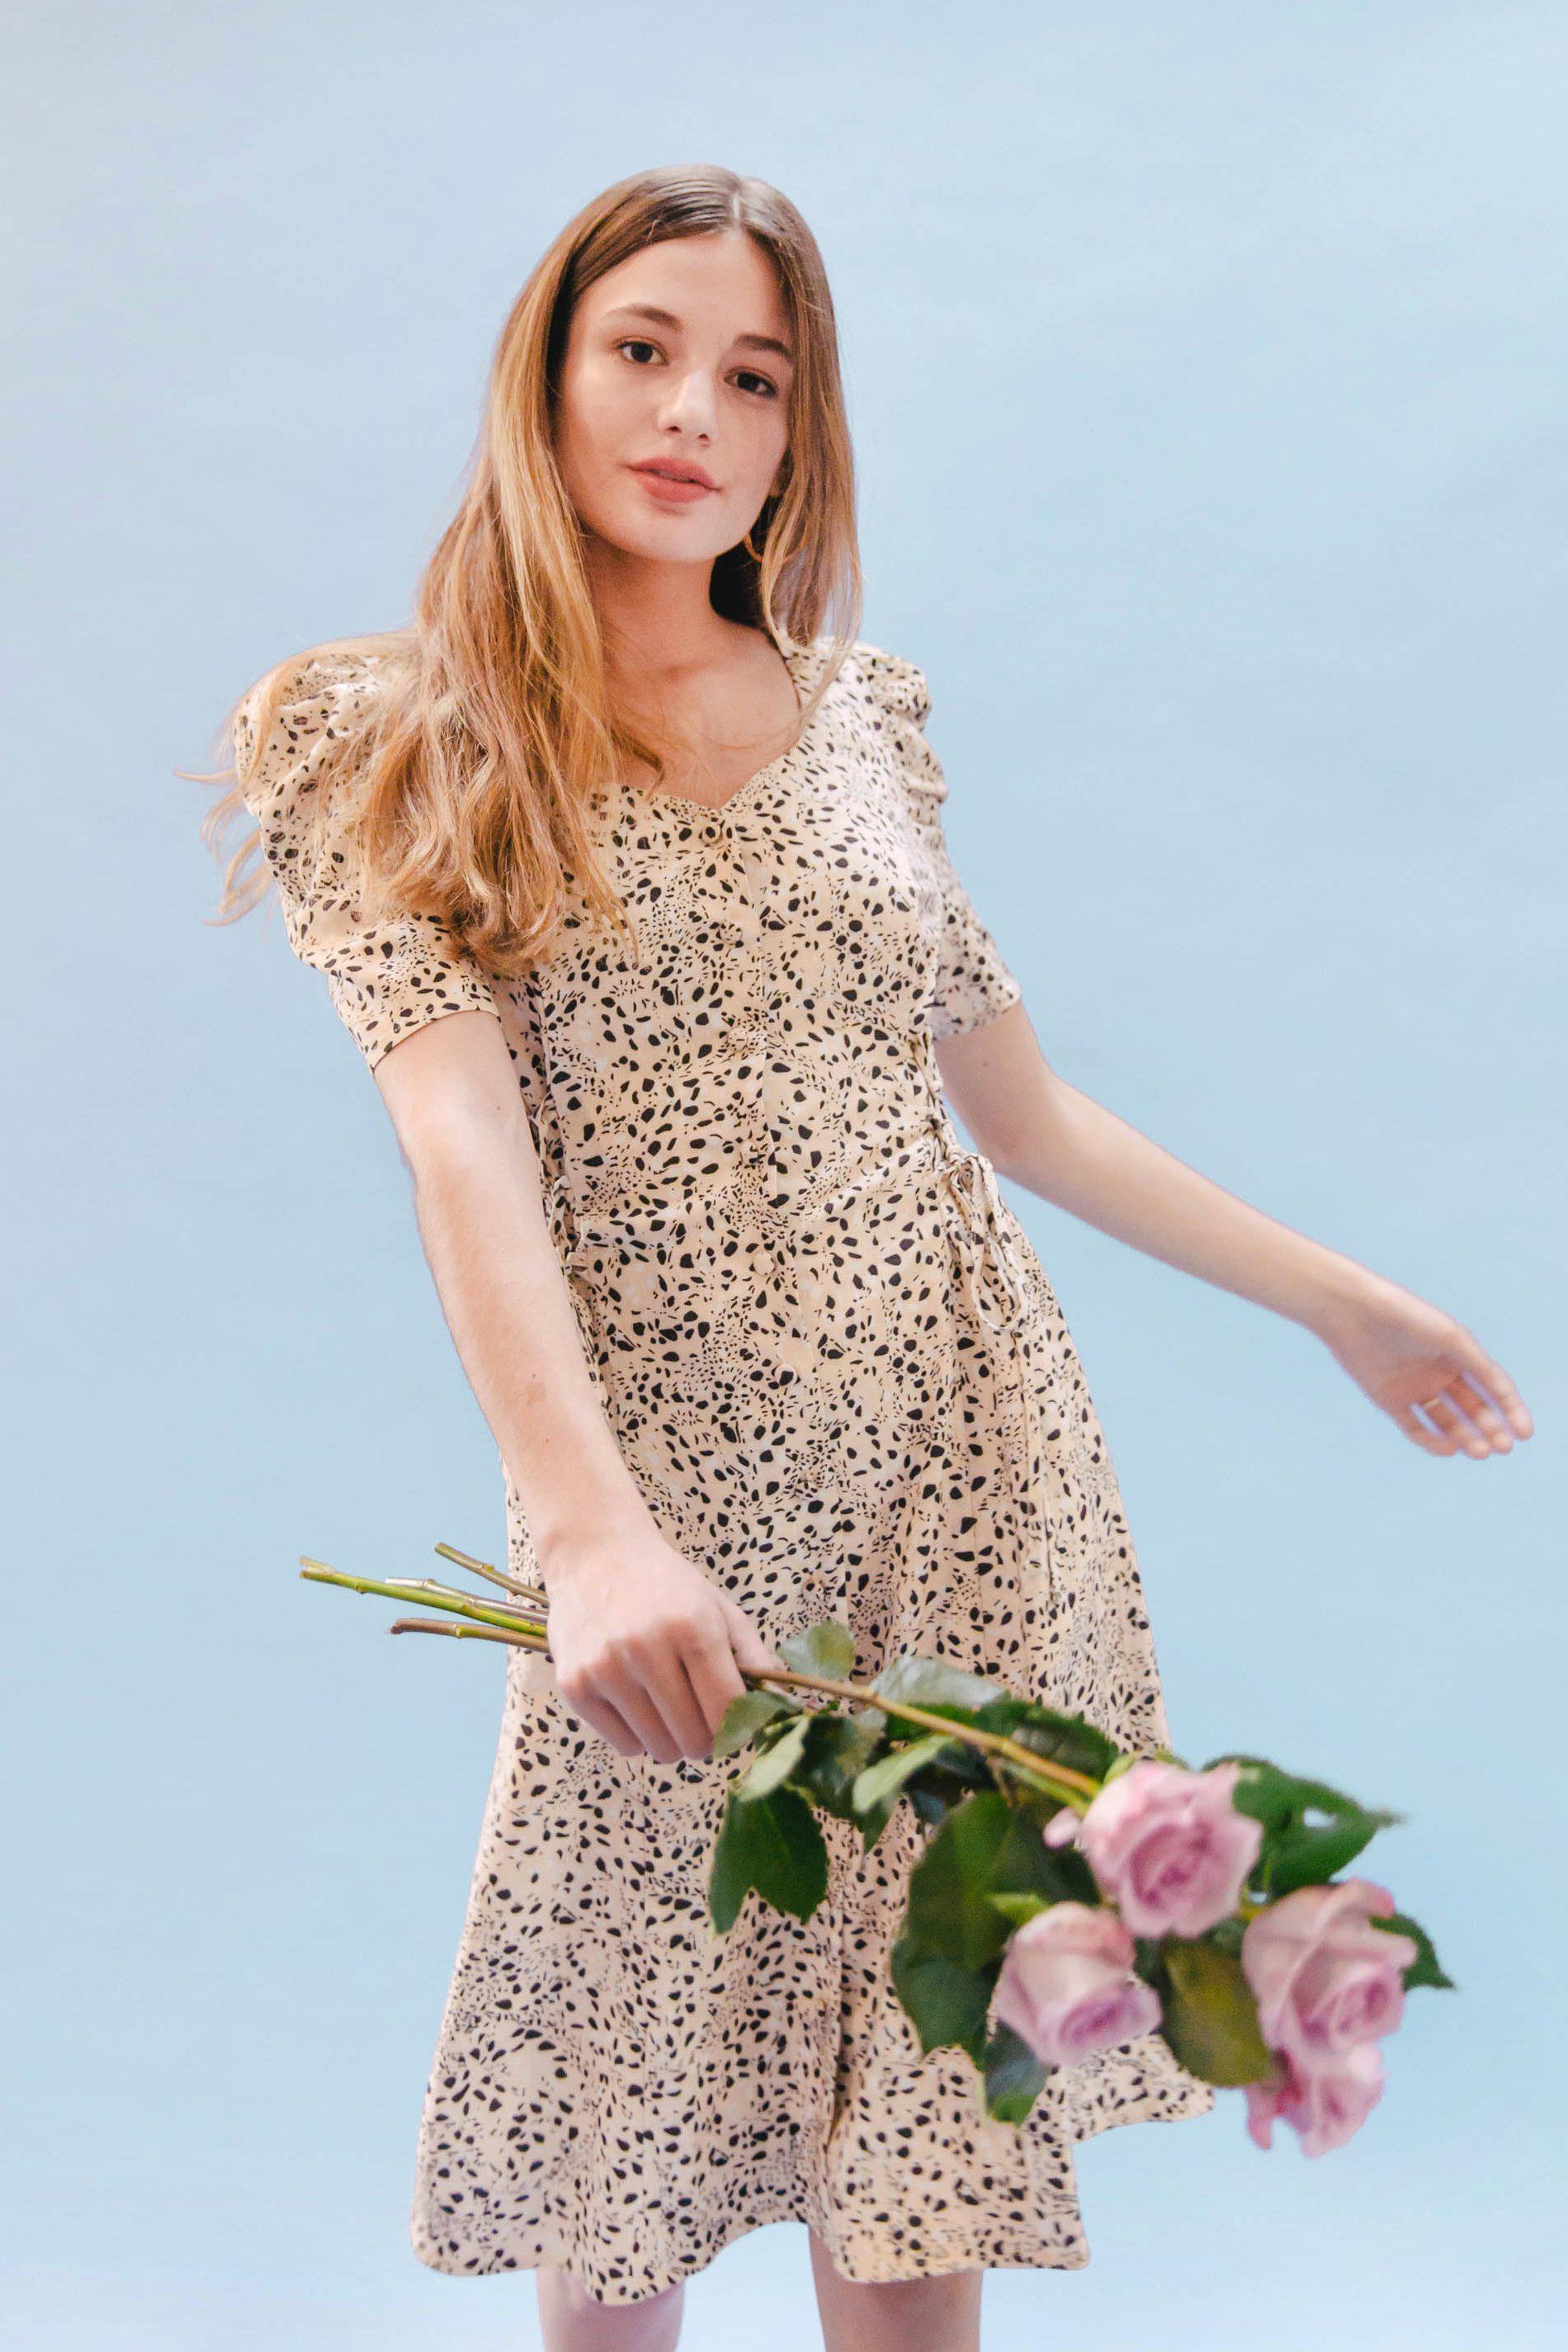 THE DOUBLE LACEUP DRESS ~ PURR 2